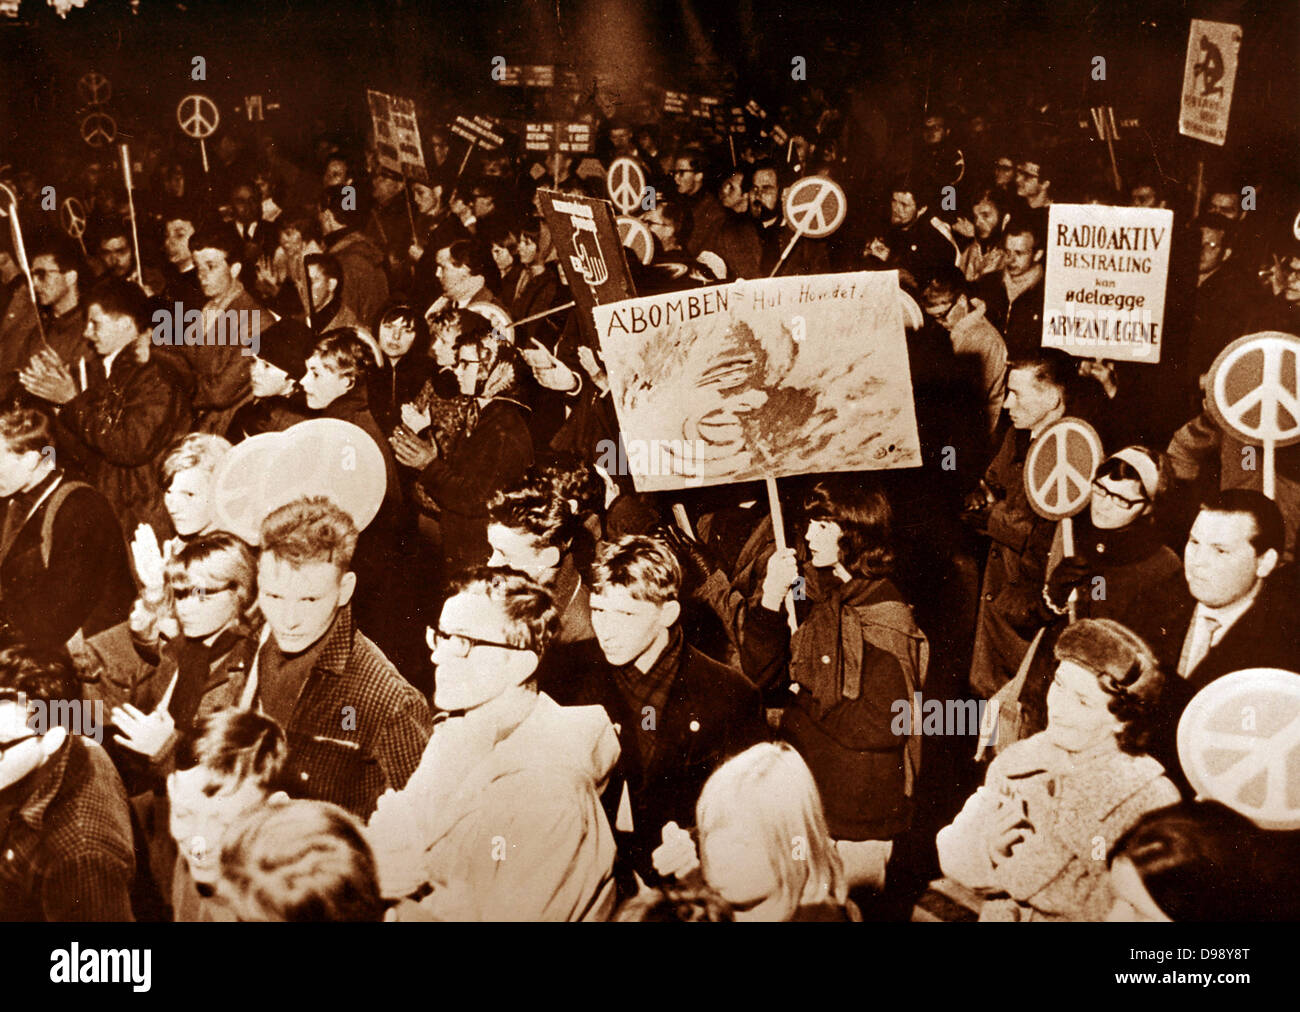 Anti-nuclear demonstration in France during the 1960's - Stock Image